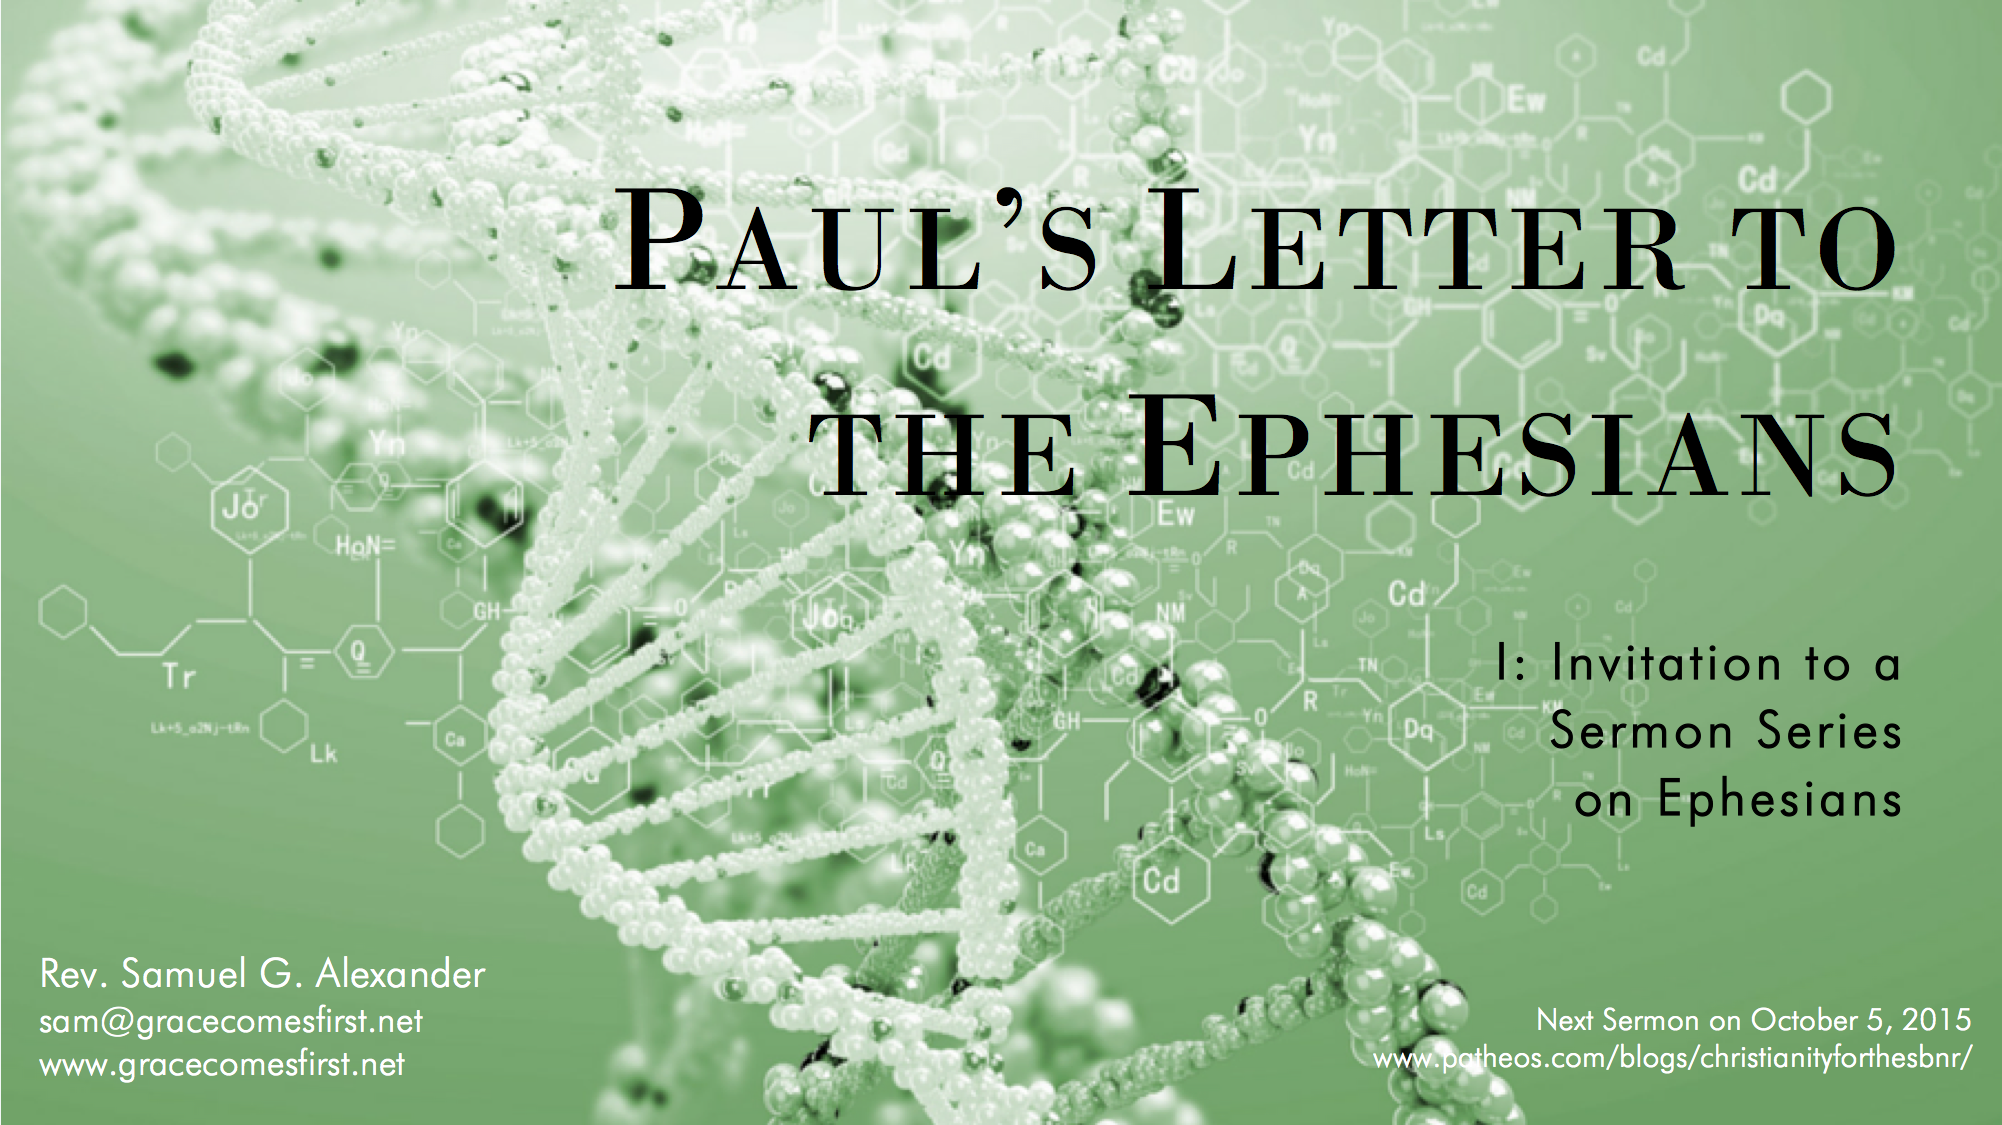 ... Invitation to a Sermon Series on Paul's Letter to the Ephesians